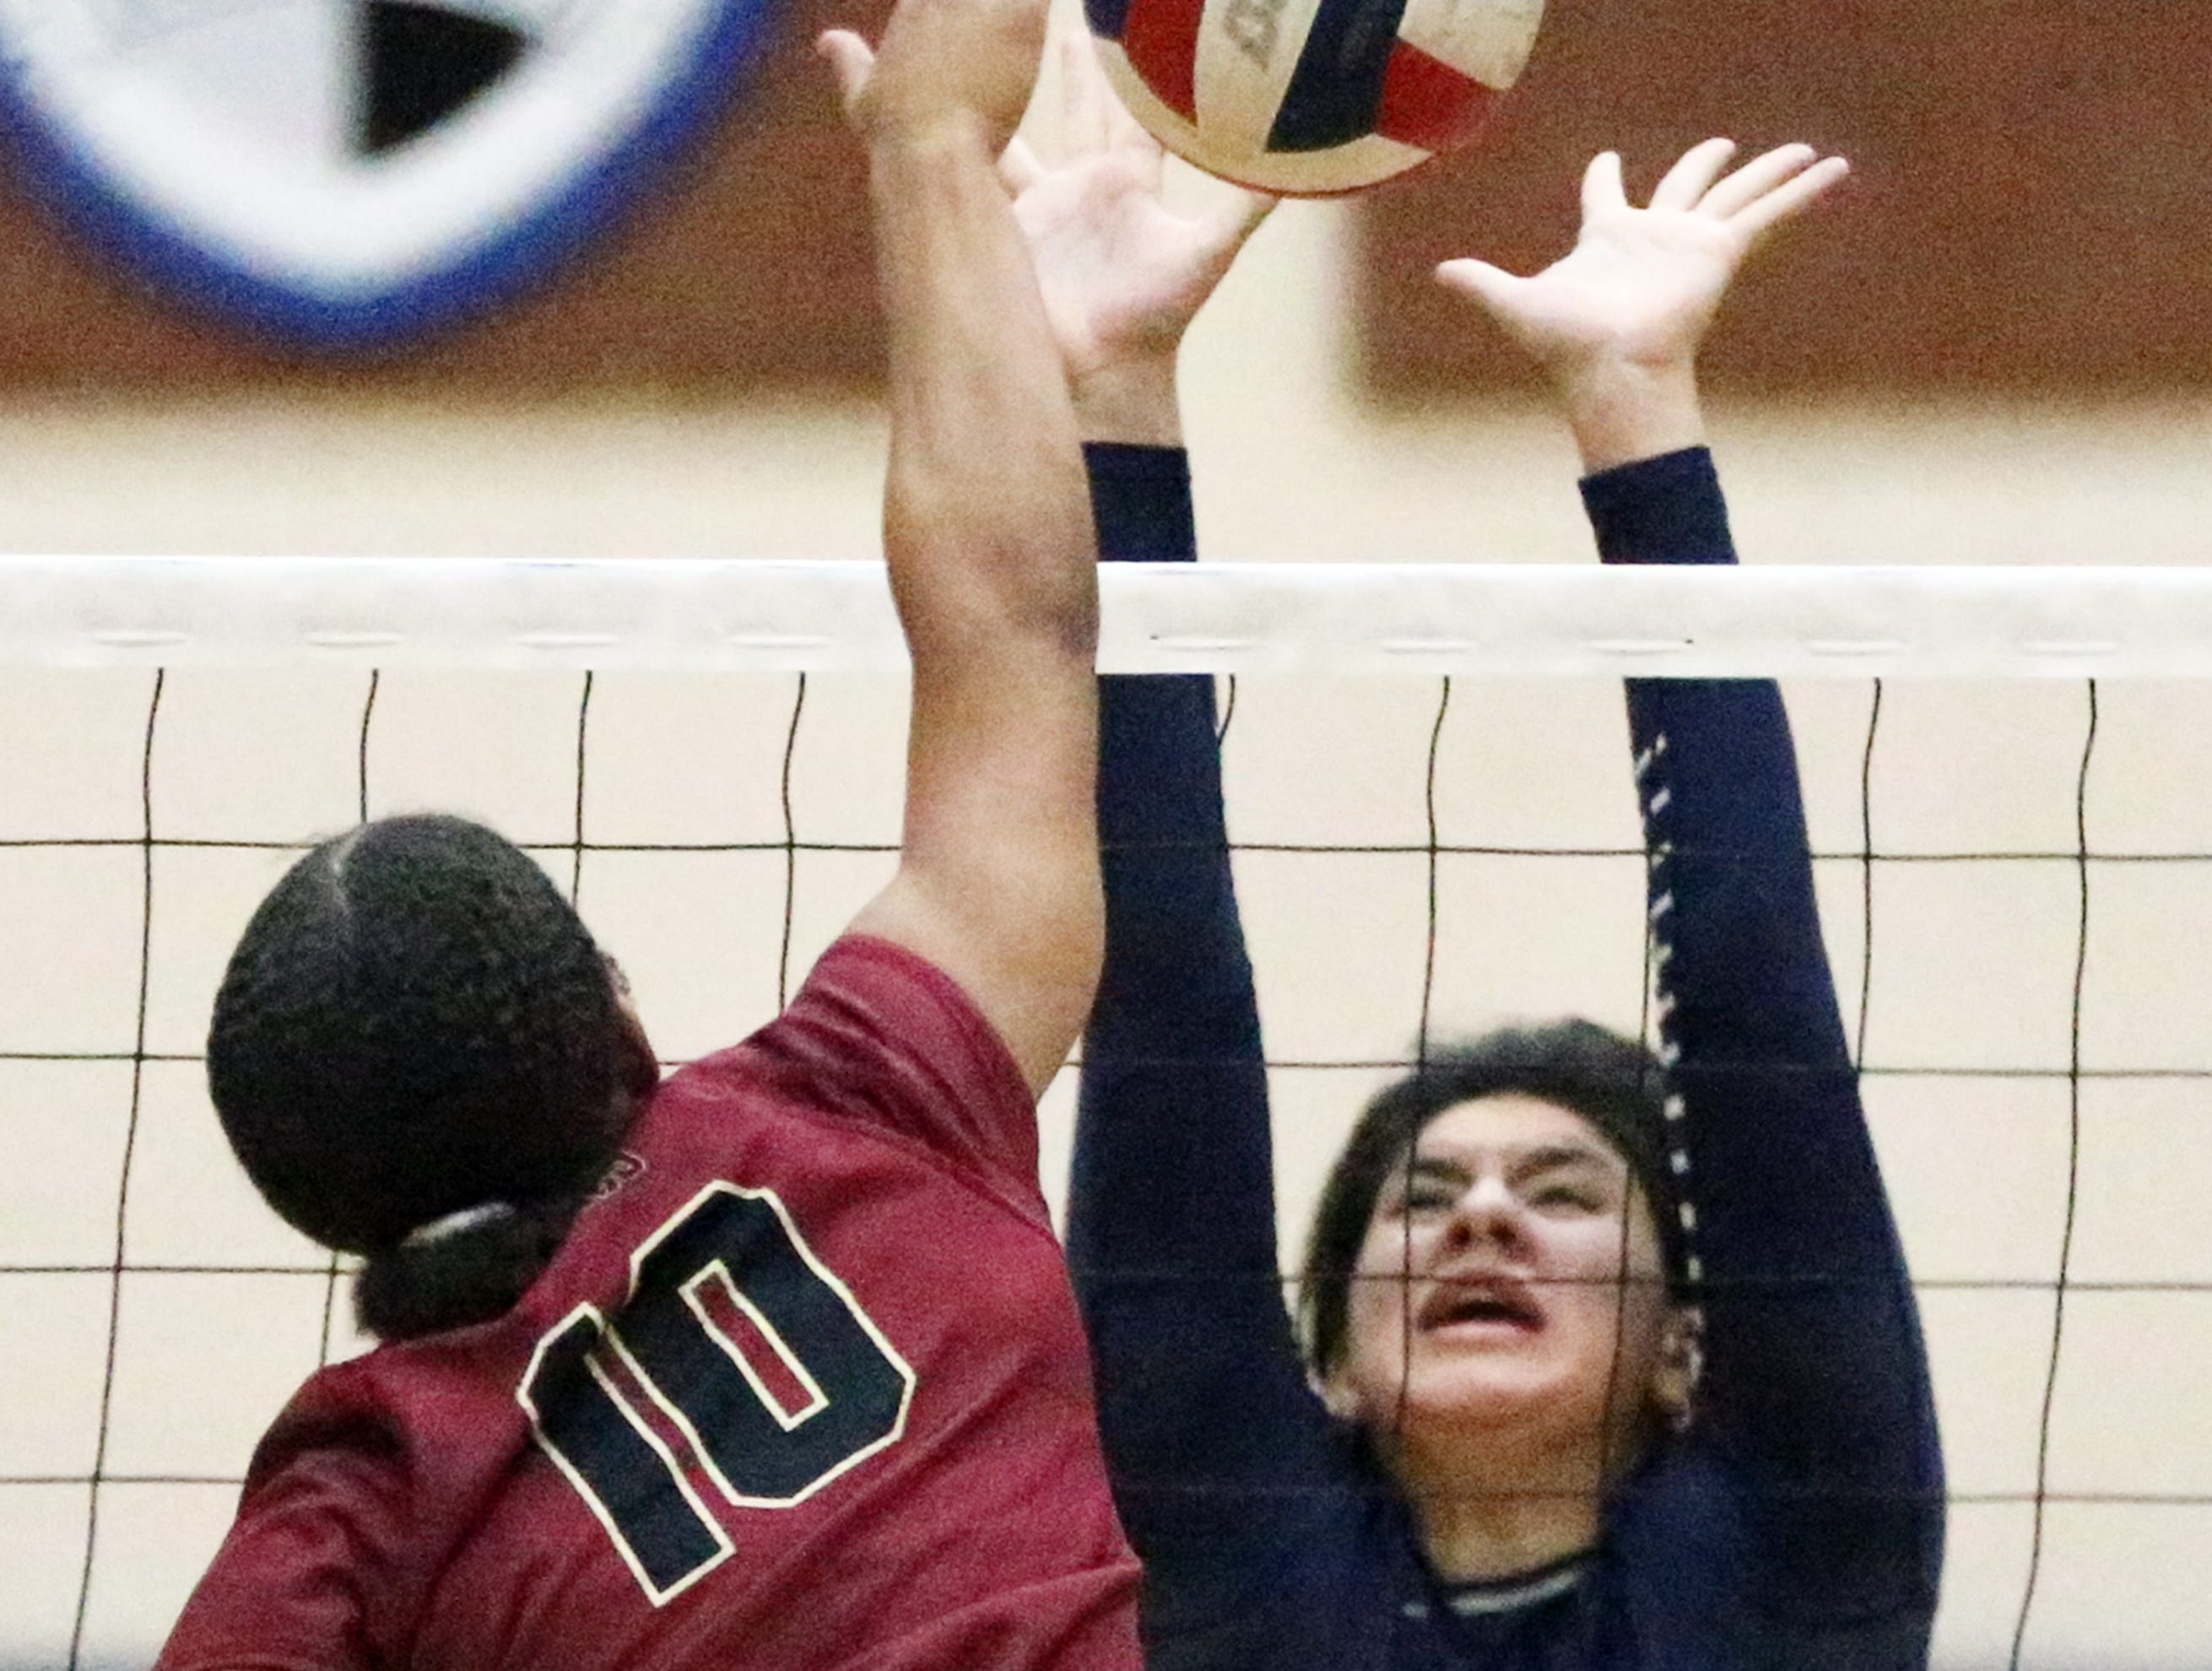 Madison Valverde, 12, of Del Valle rises in a futile effort to block a shot by Darling Harris, 10, of El Dorado Tuesday night at Del Valle. The Aztecs beat the Conquistadores in three sets.